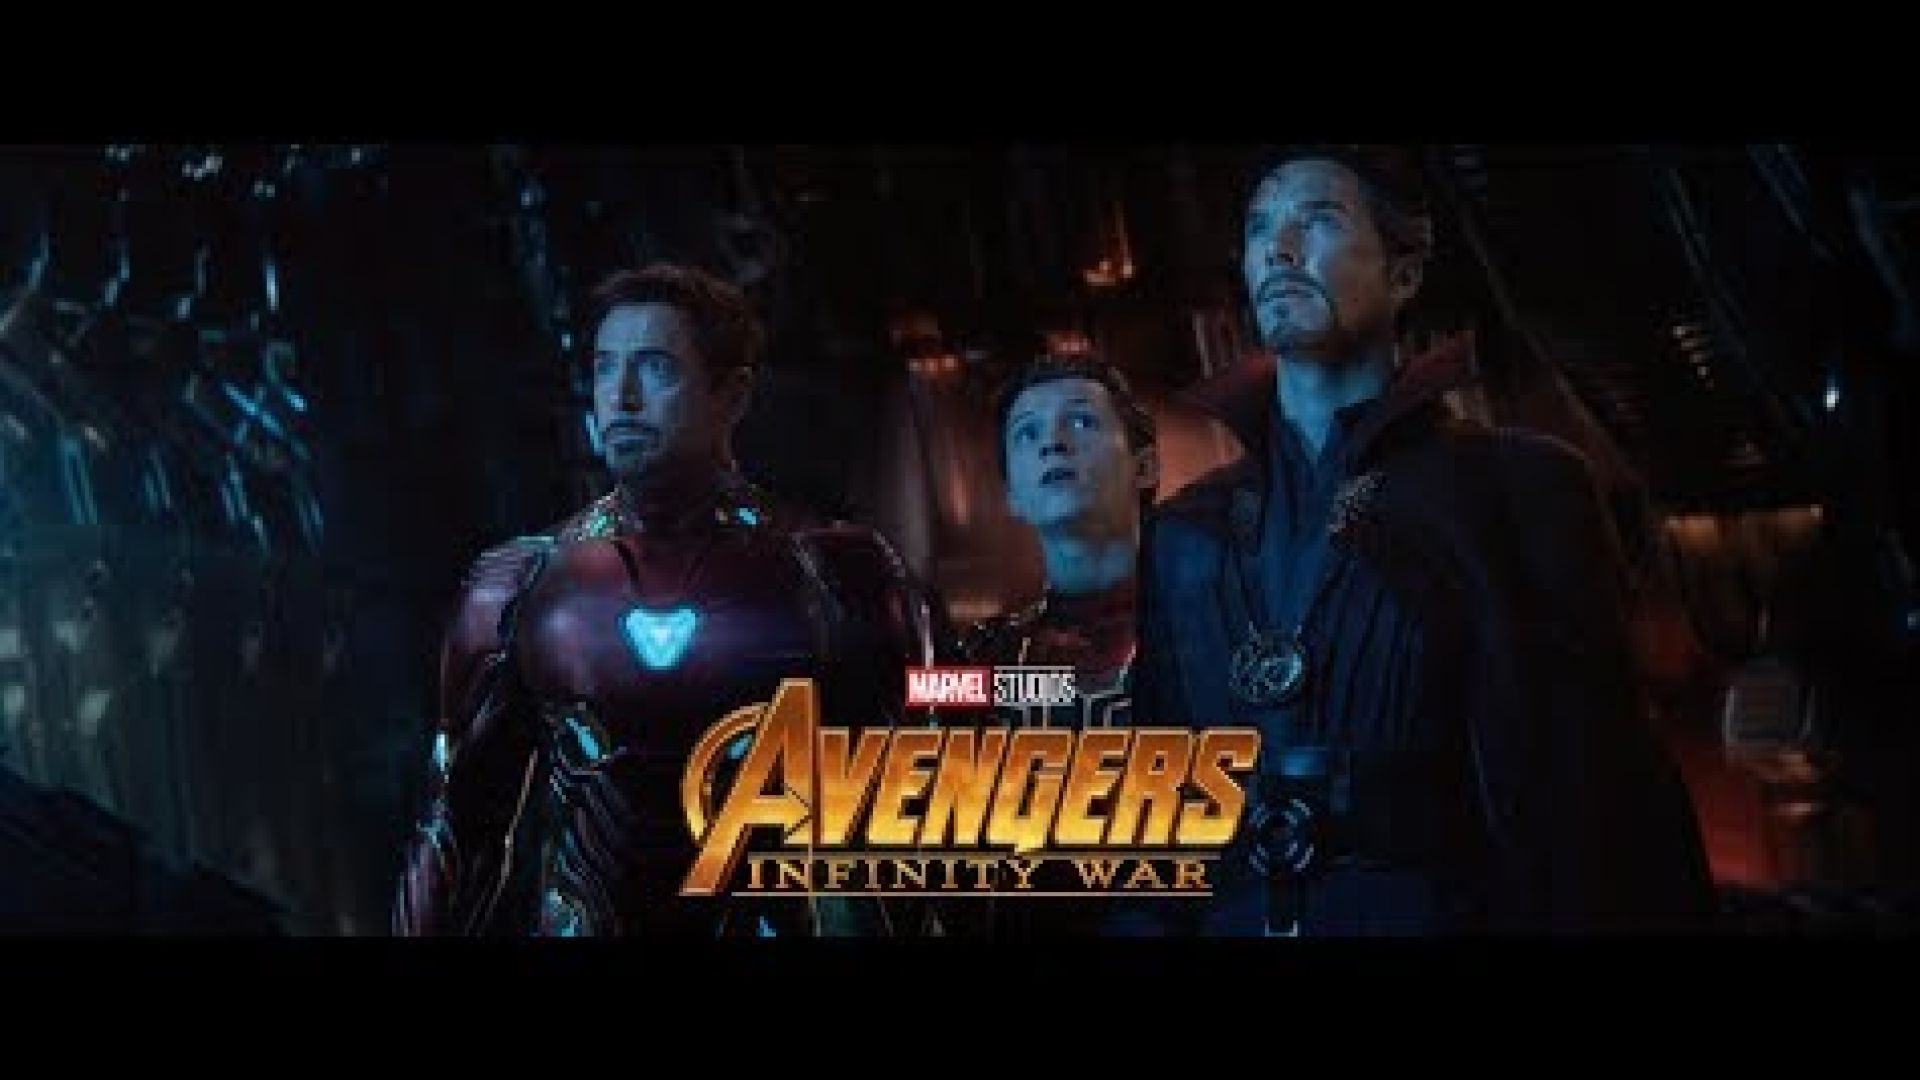 Marvel Studios' Avengers: Infinity War Big Game Spot